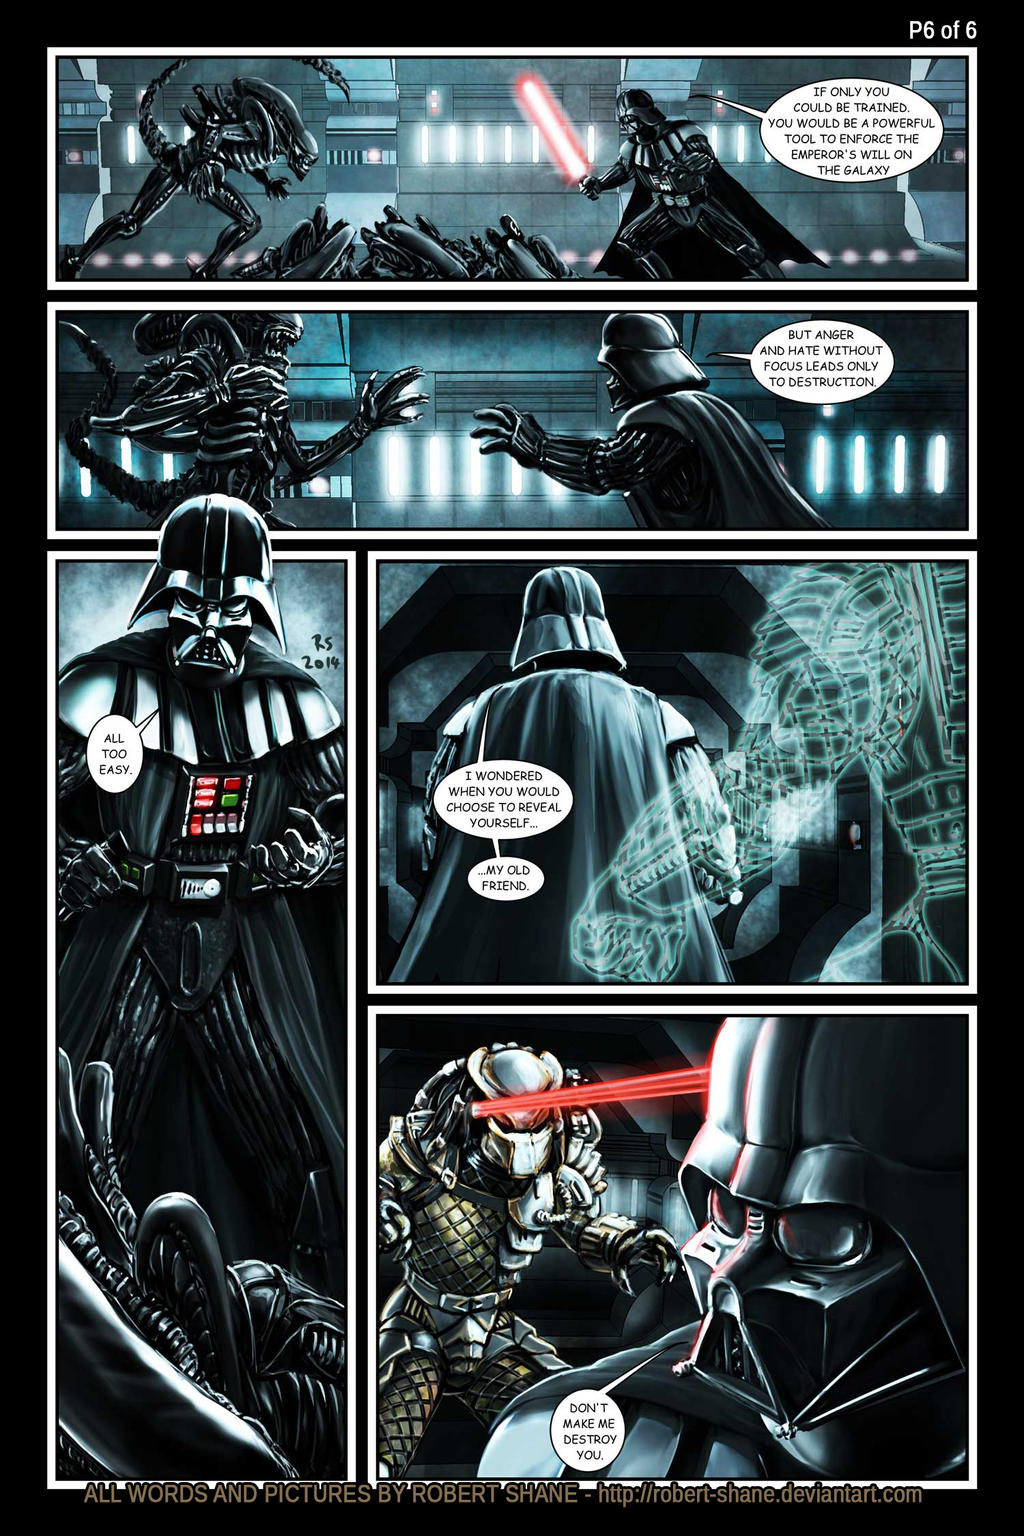 Star Wars vs Aliens by Robert Shane Page 6